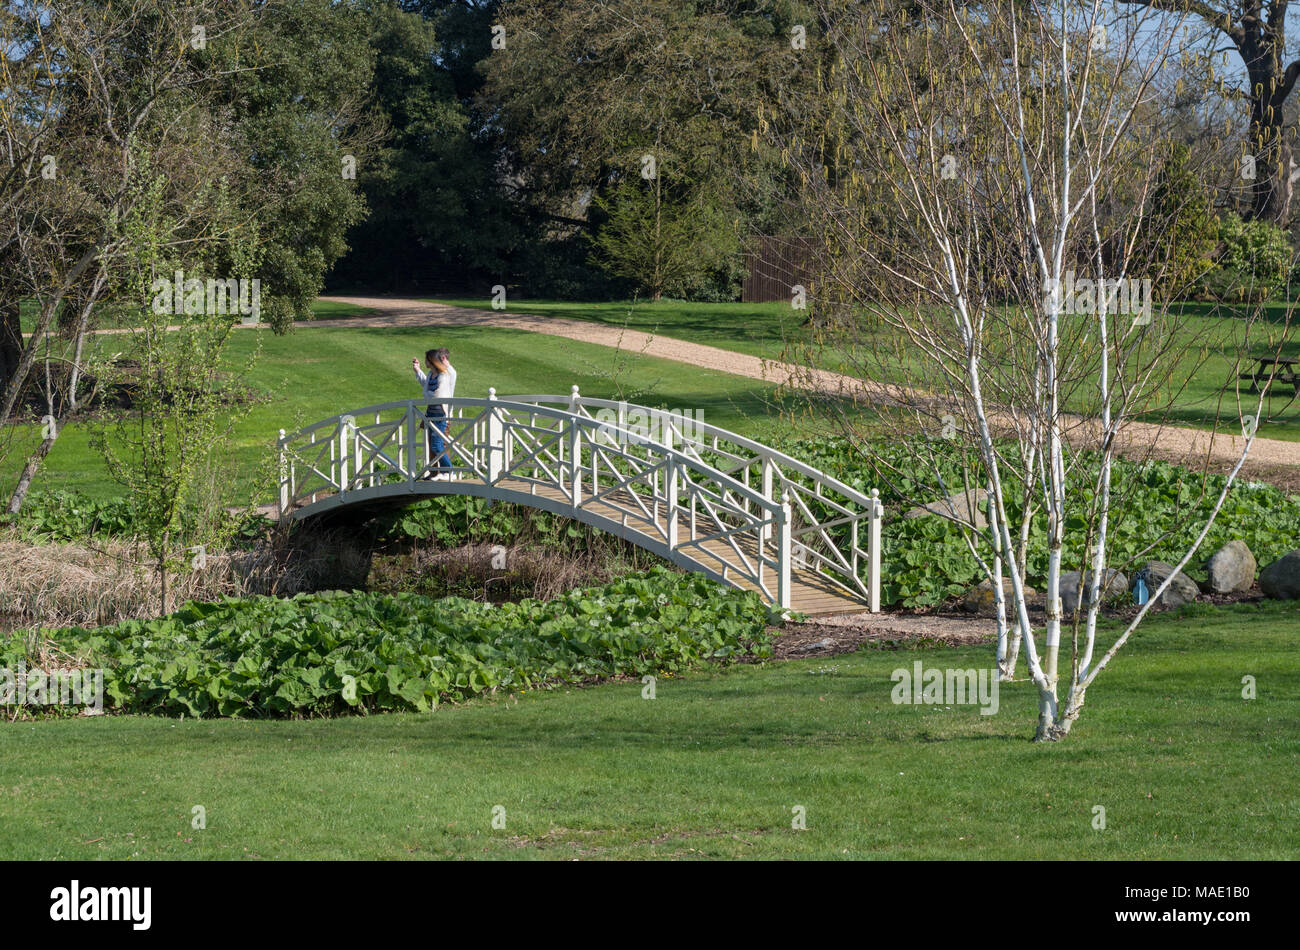 Young Couple Standing On A White Bridge Designed In The Chinese Style Which  Crosses The Bog Garden At Woburn Abbey Gardens, UK